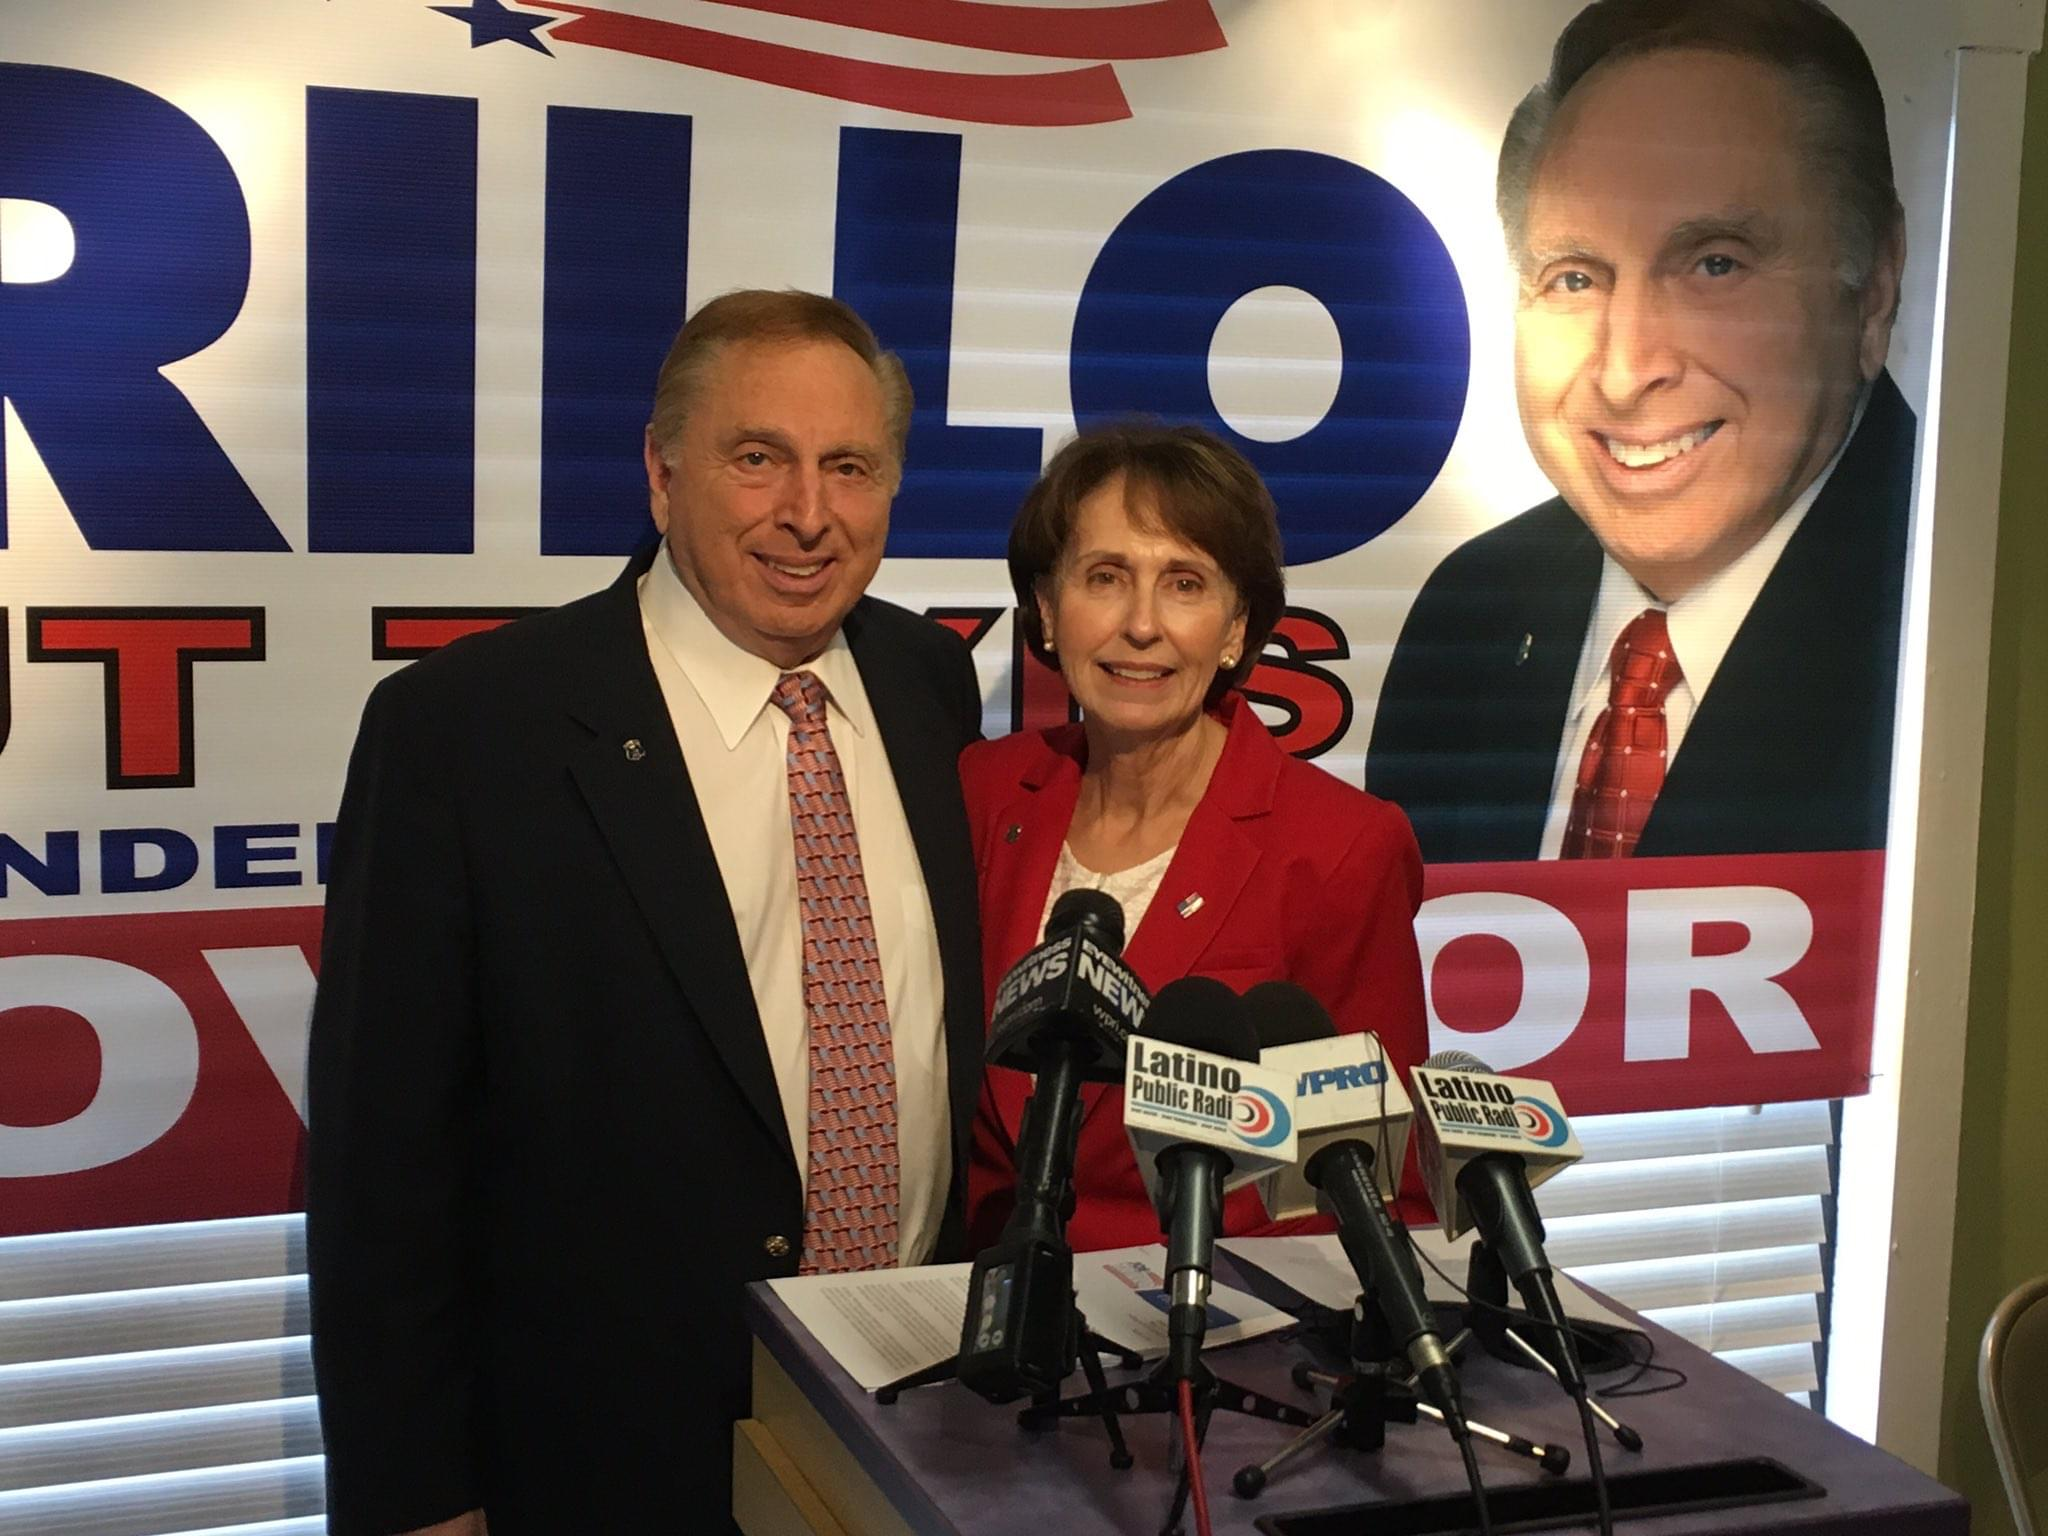 Patricia Morgan endorses Joe Trillo for Governor